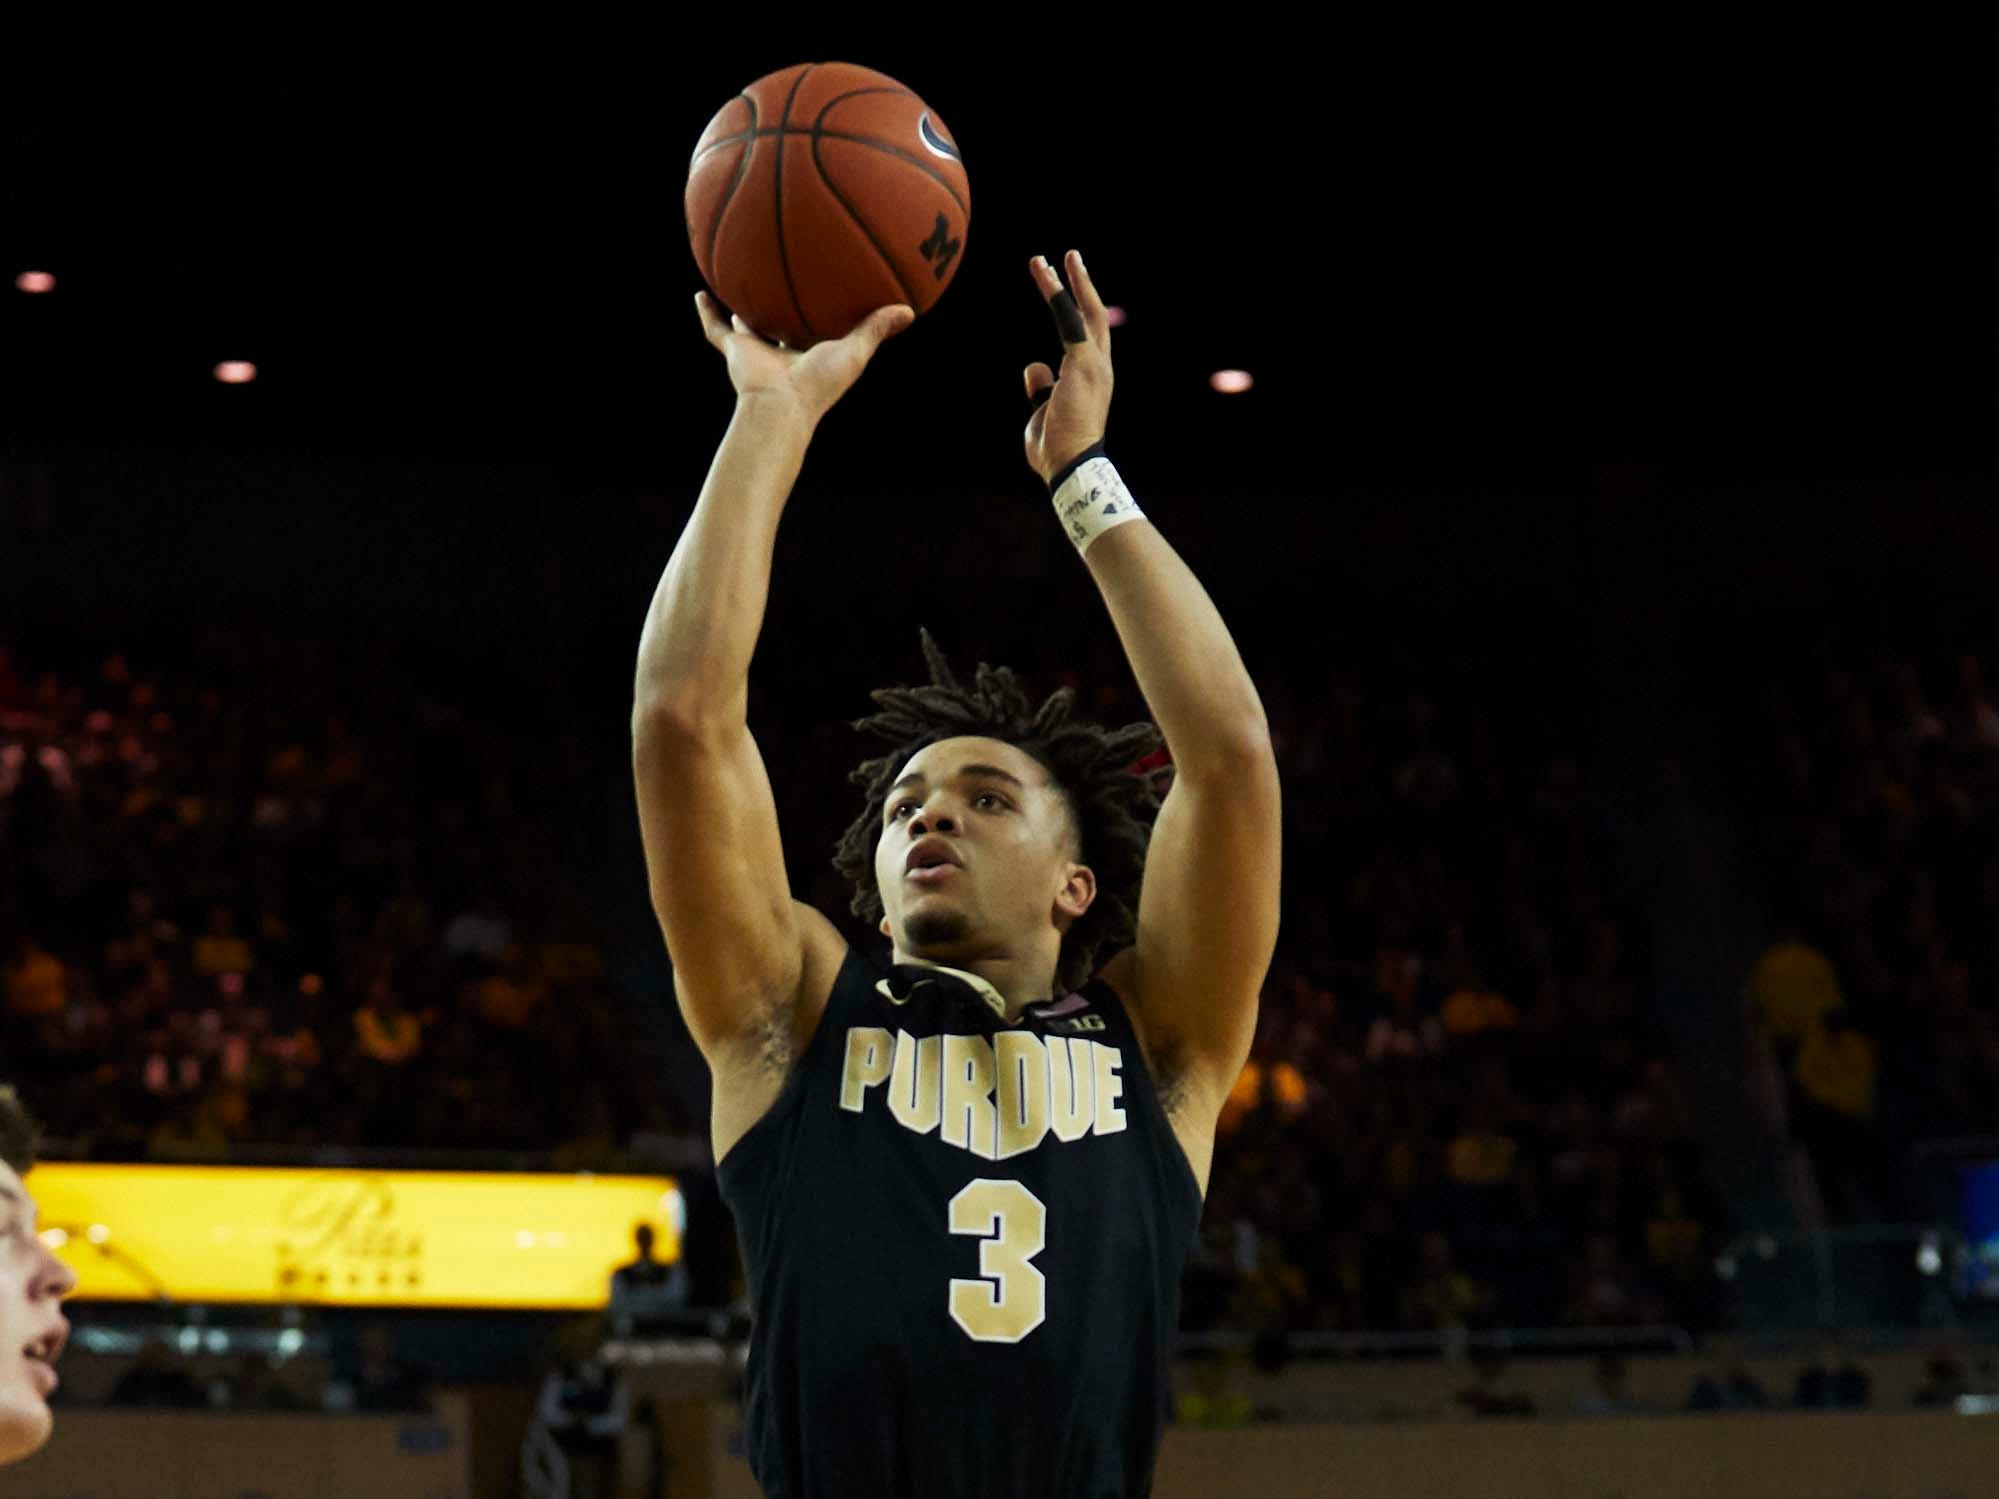 Dec 1, 2018; Ann Arbor, MI, USA; Purdue Boilermakers guard Carsen Edwards (3) shoots in the second half against the Michigan Wolverines at Crisler Center. Mandatory Credit: Rick Osentoski-USA TODAY Sports